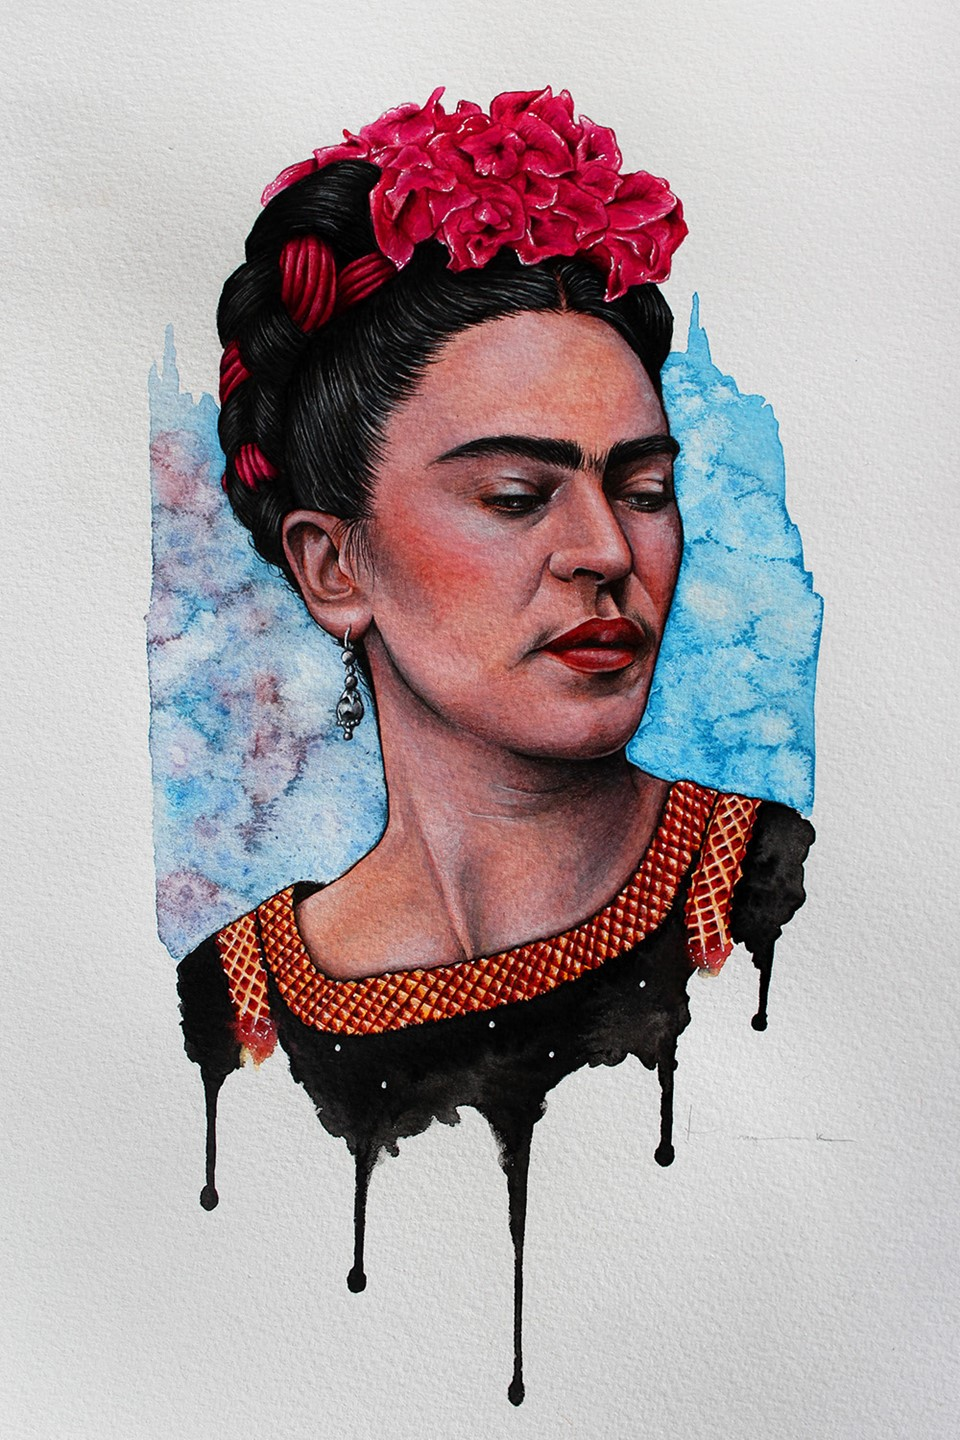 Mixed media portrait painting by Holly Khraibani